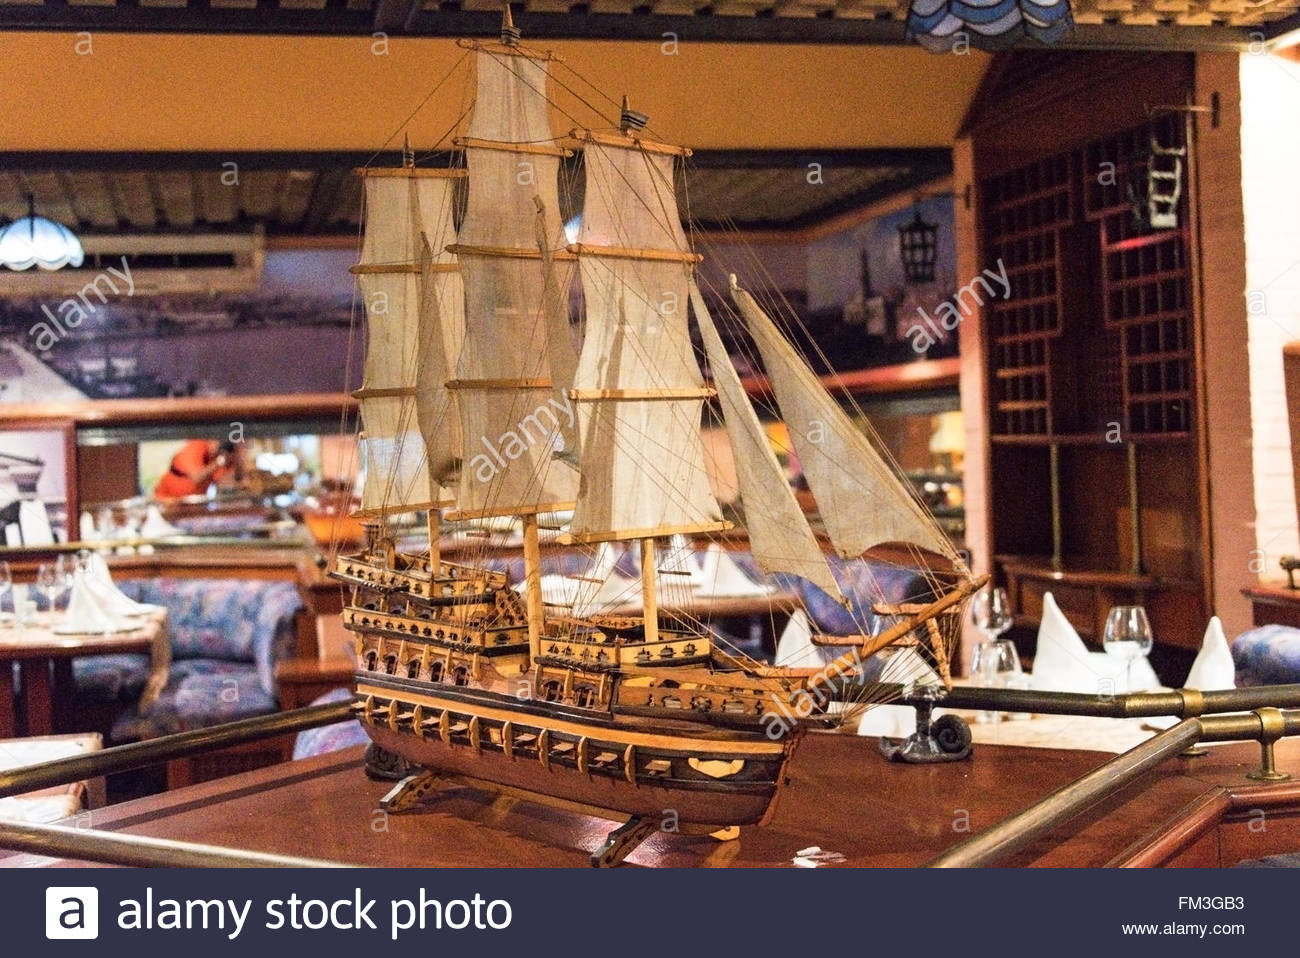 comodoro hotel miniature sail ship replica decorating the restaurant